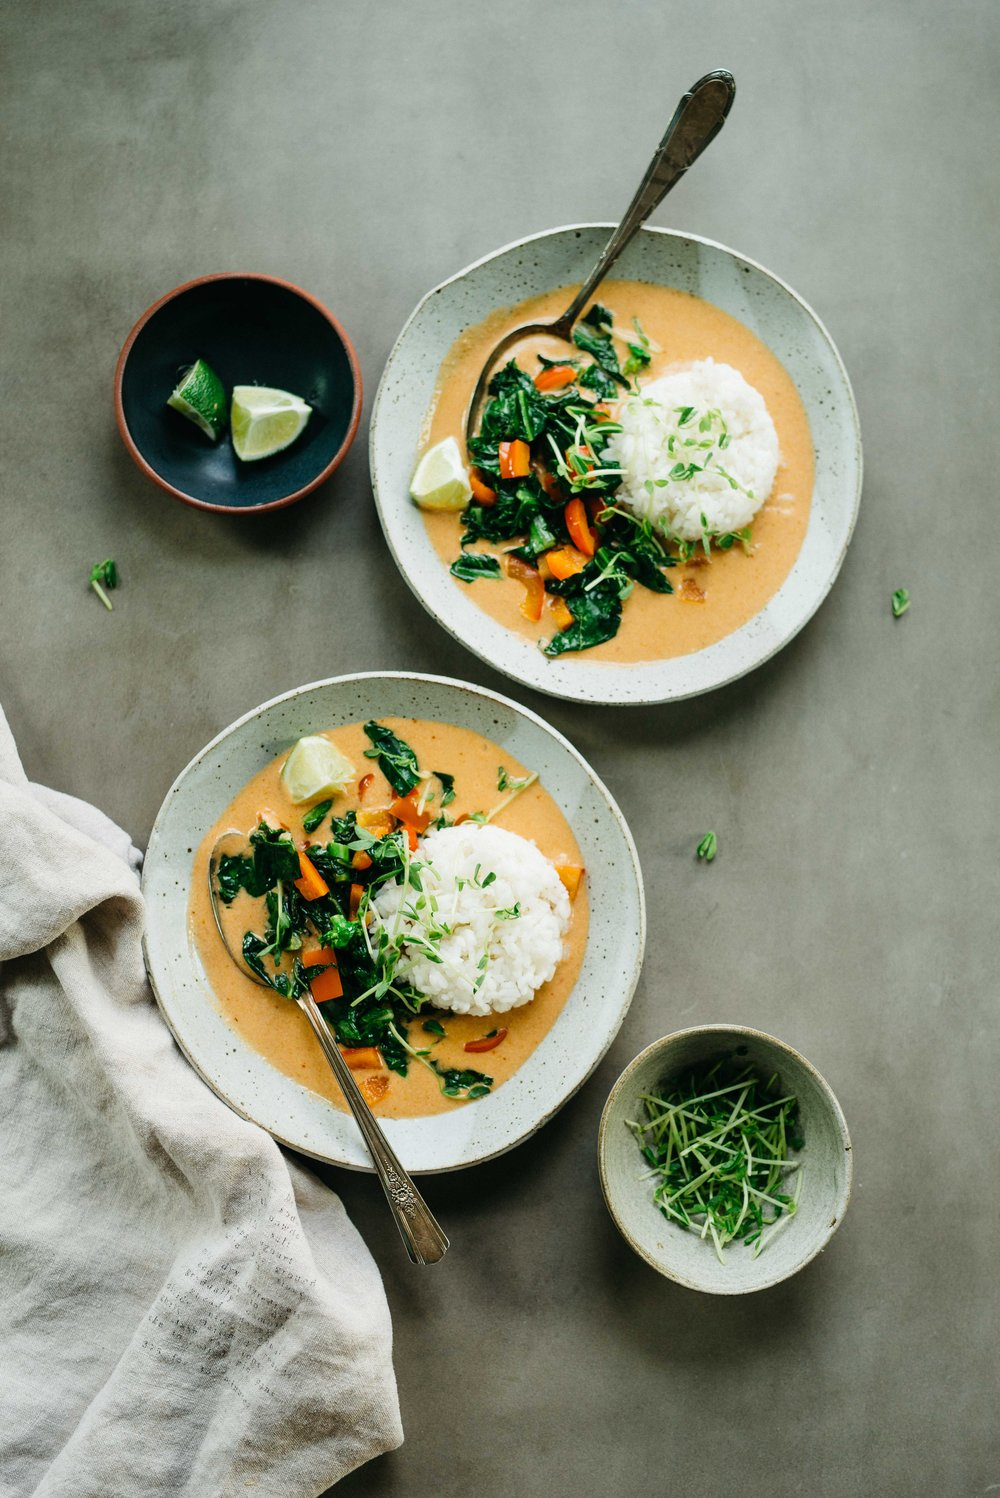 Peanut veggie curry - Pair with a good sake (cold of course!)